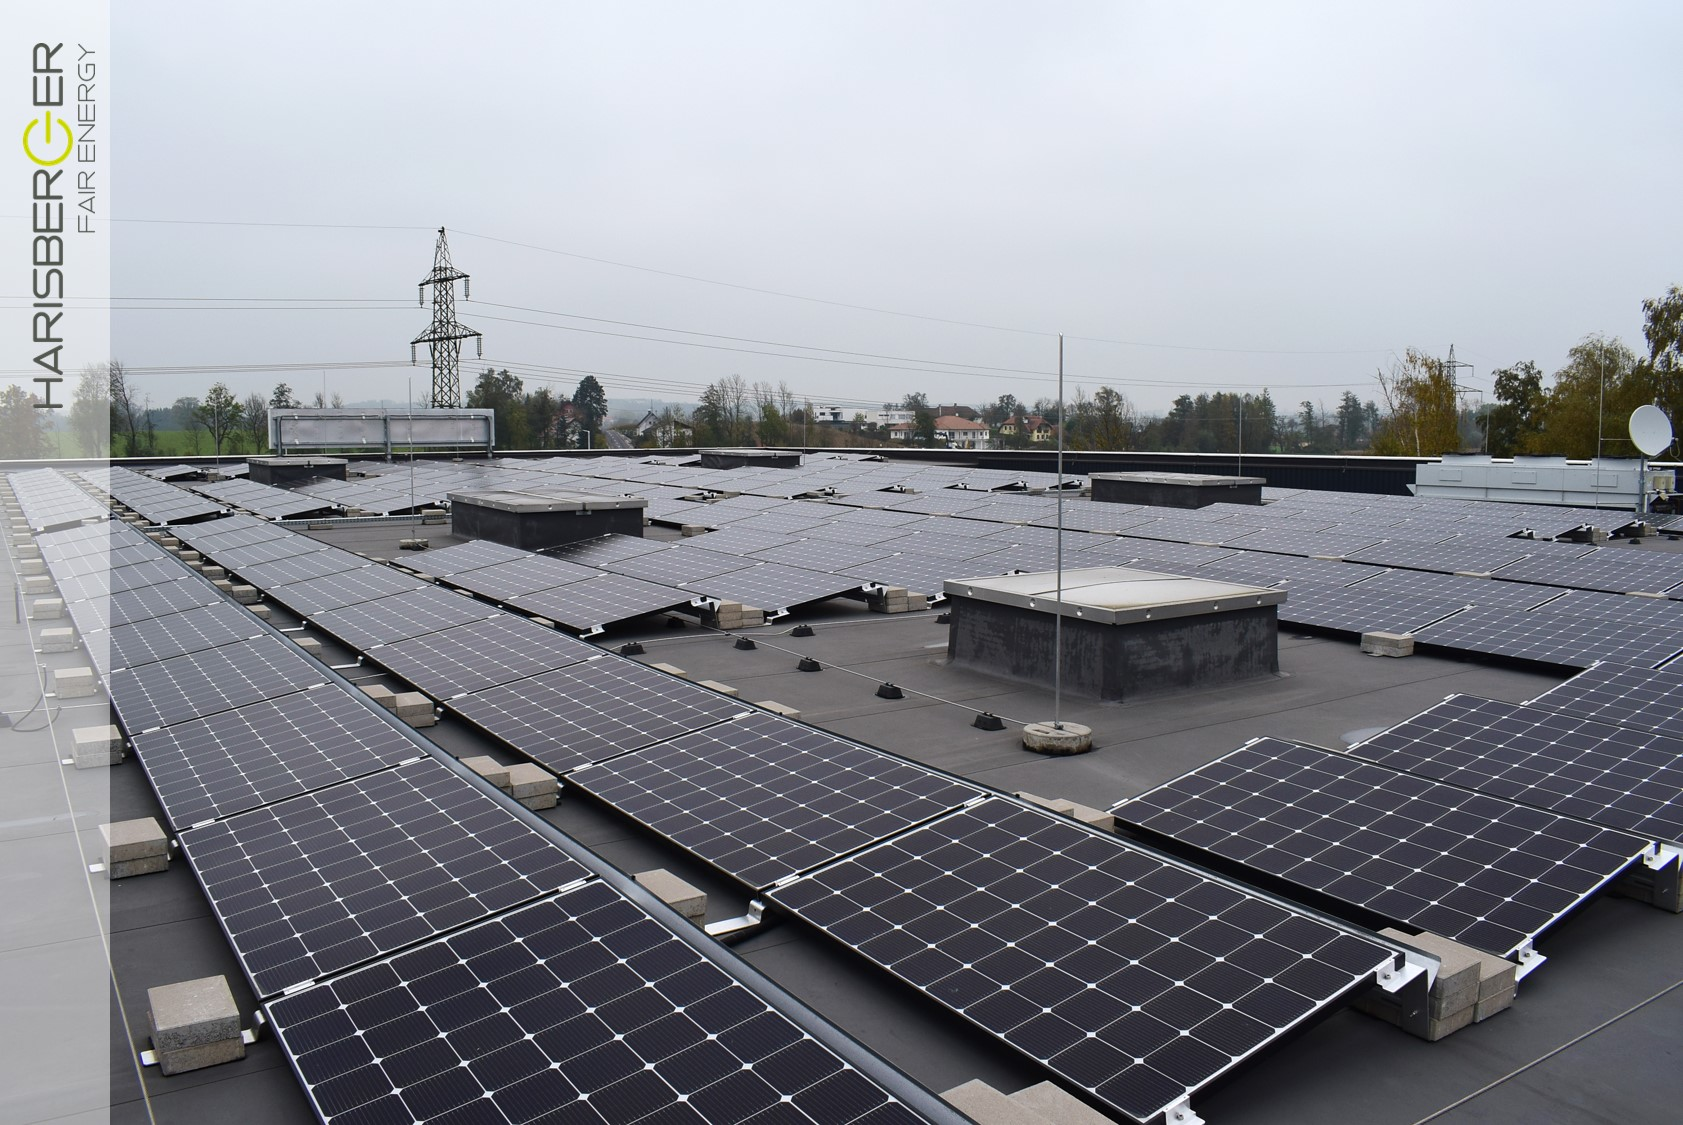 Spar Poschacher, Gunskirchen, 70,35 kWp